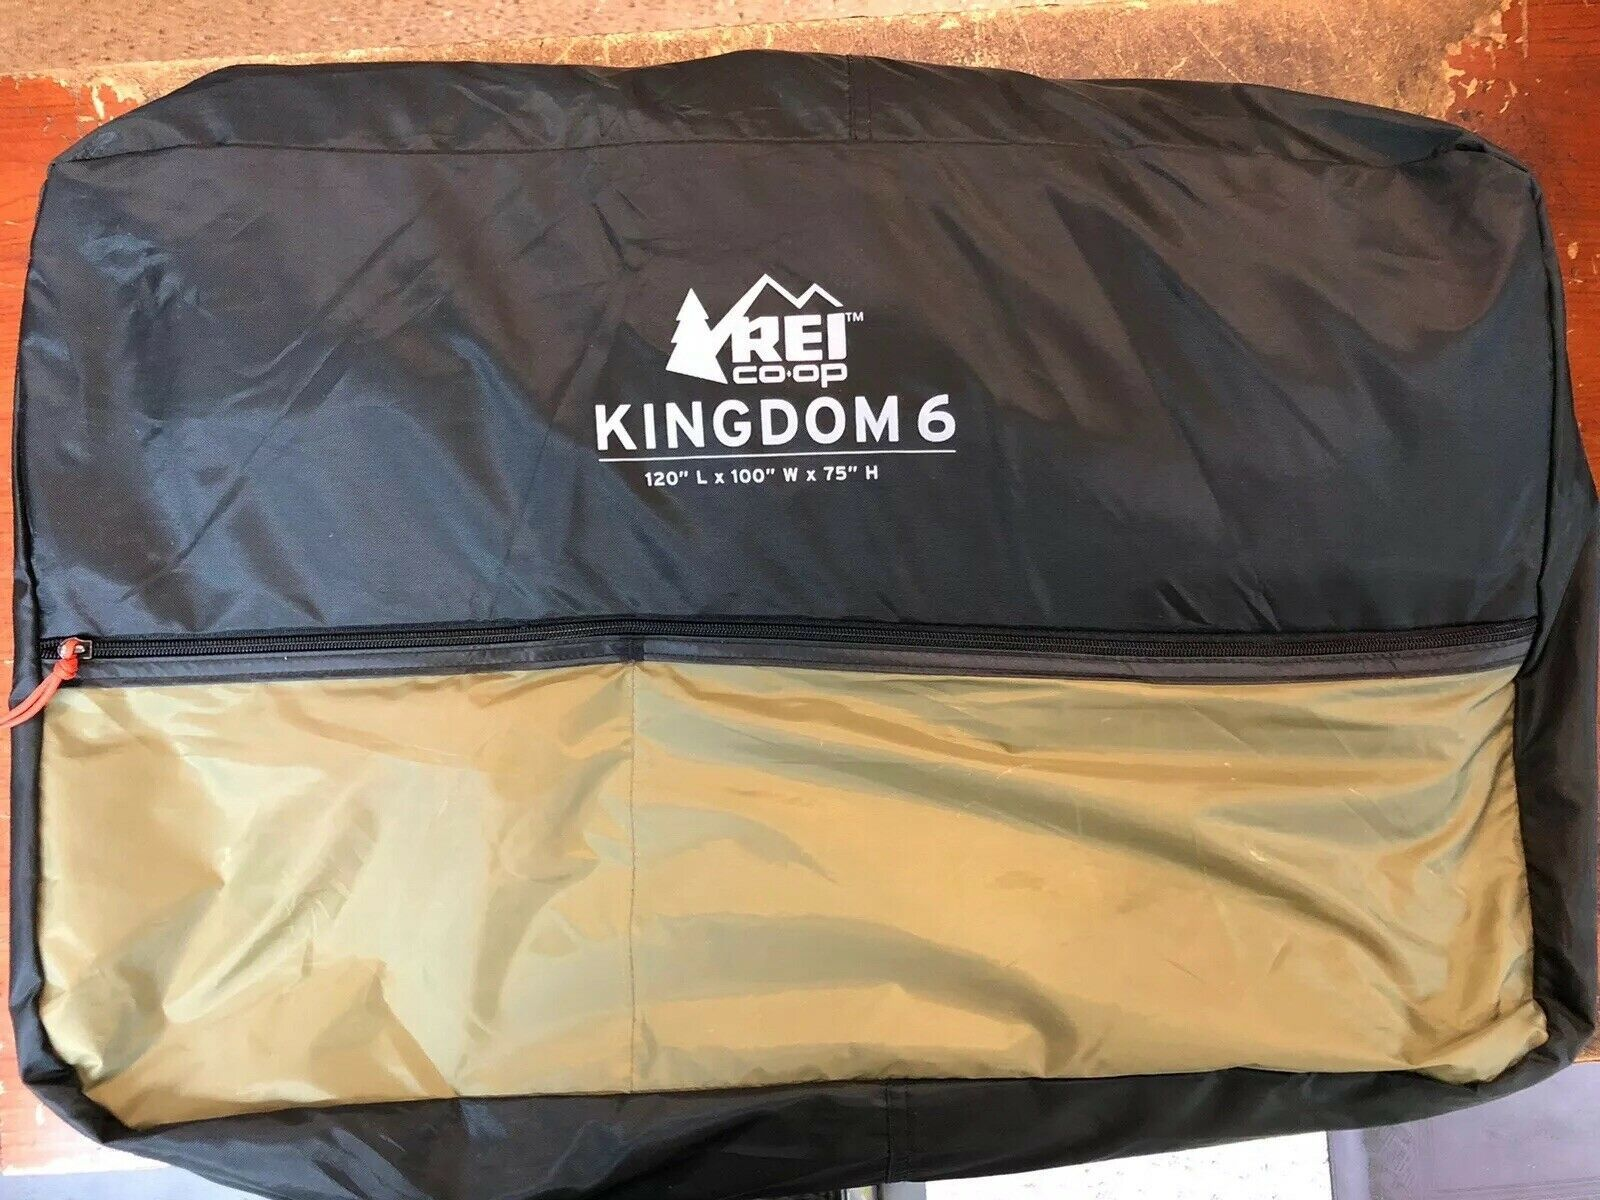 Rei Co Op Kingdom 6 Deluxe Car Camping Tent Forest Floor